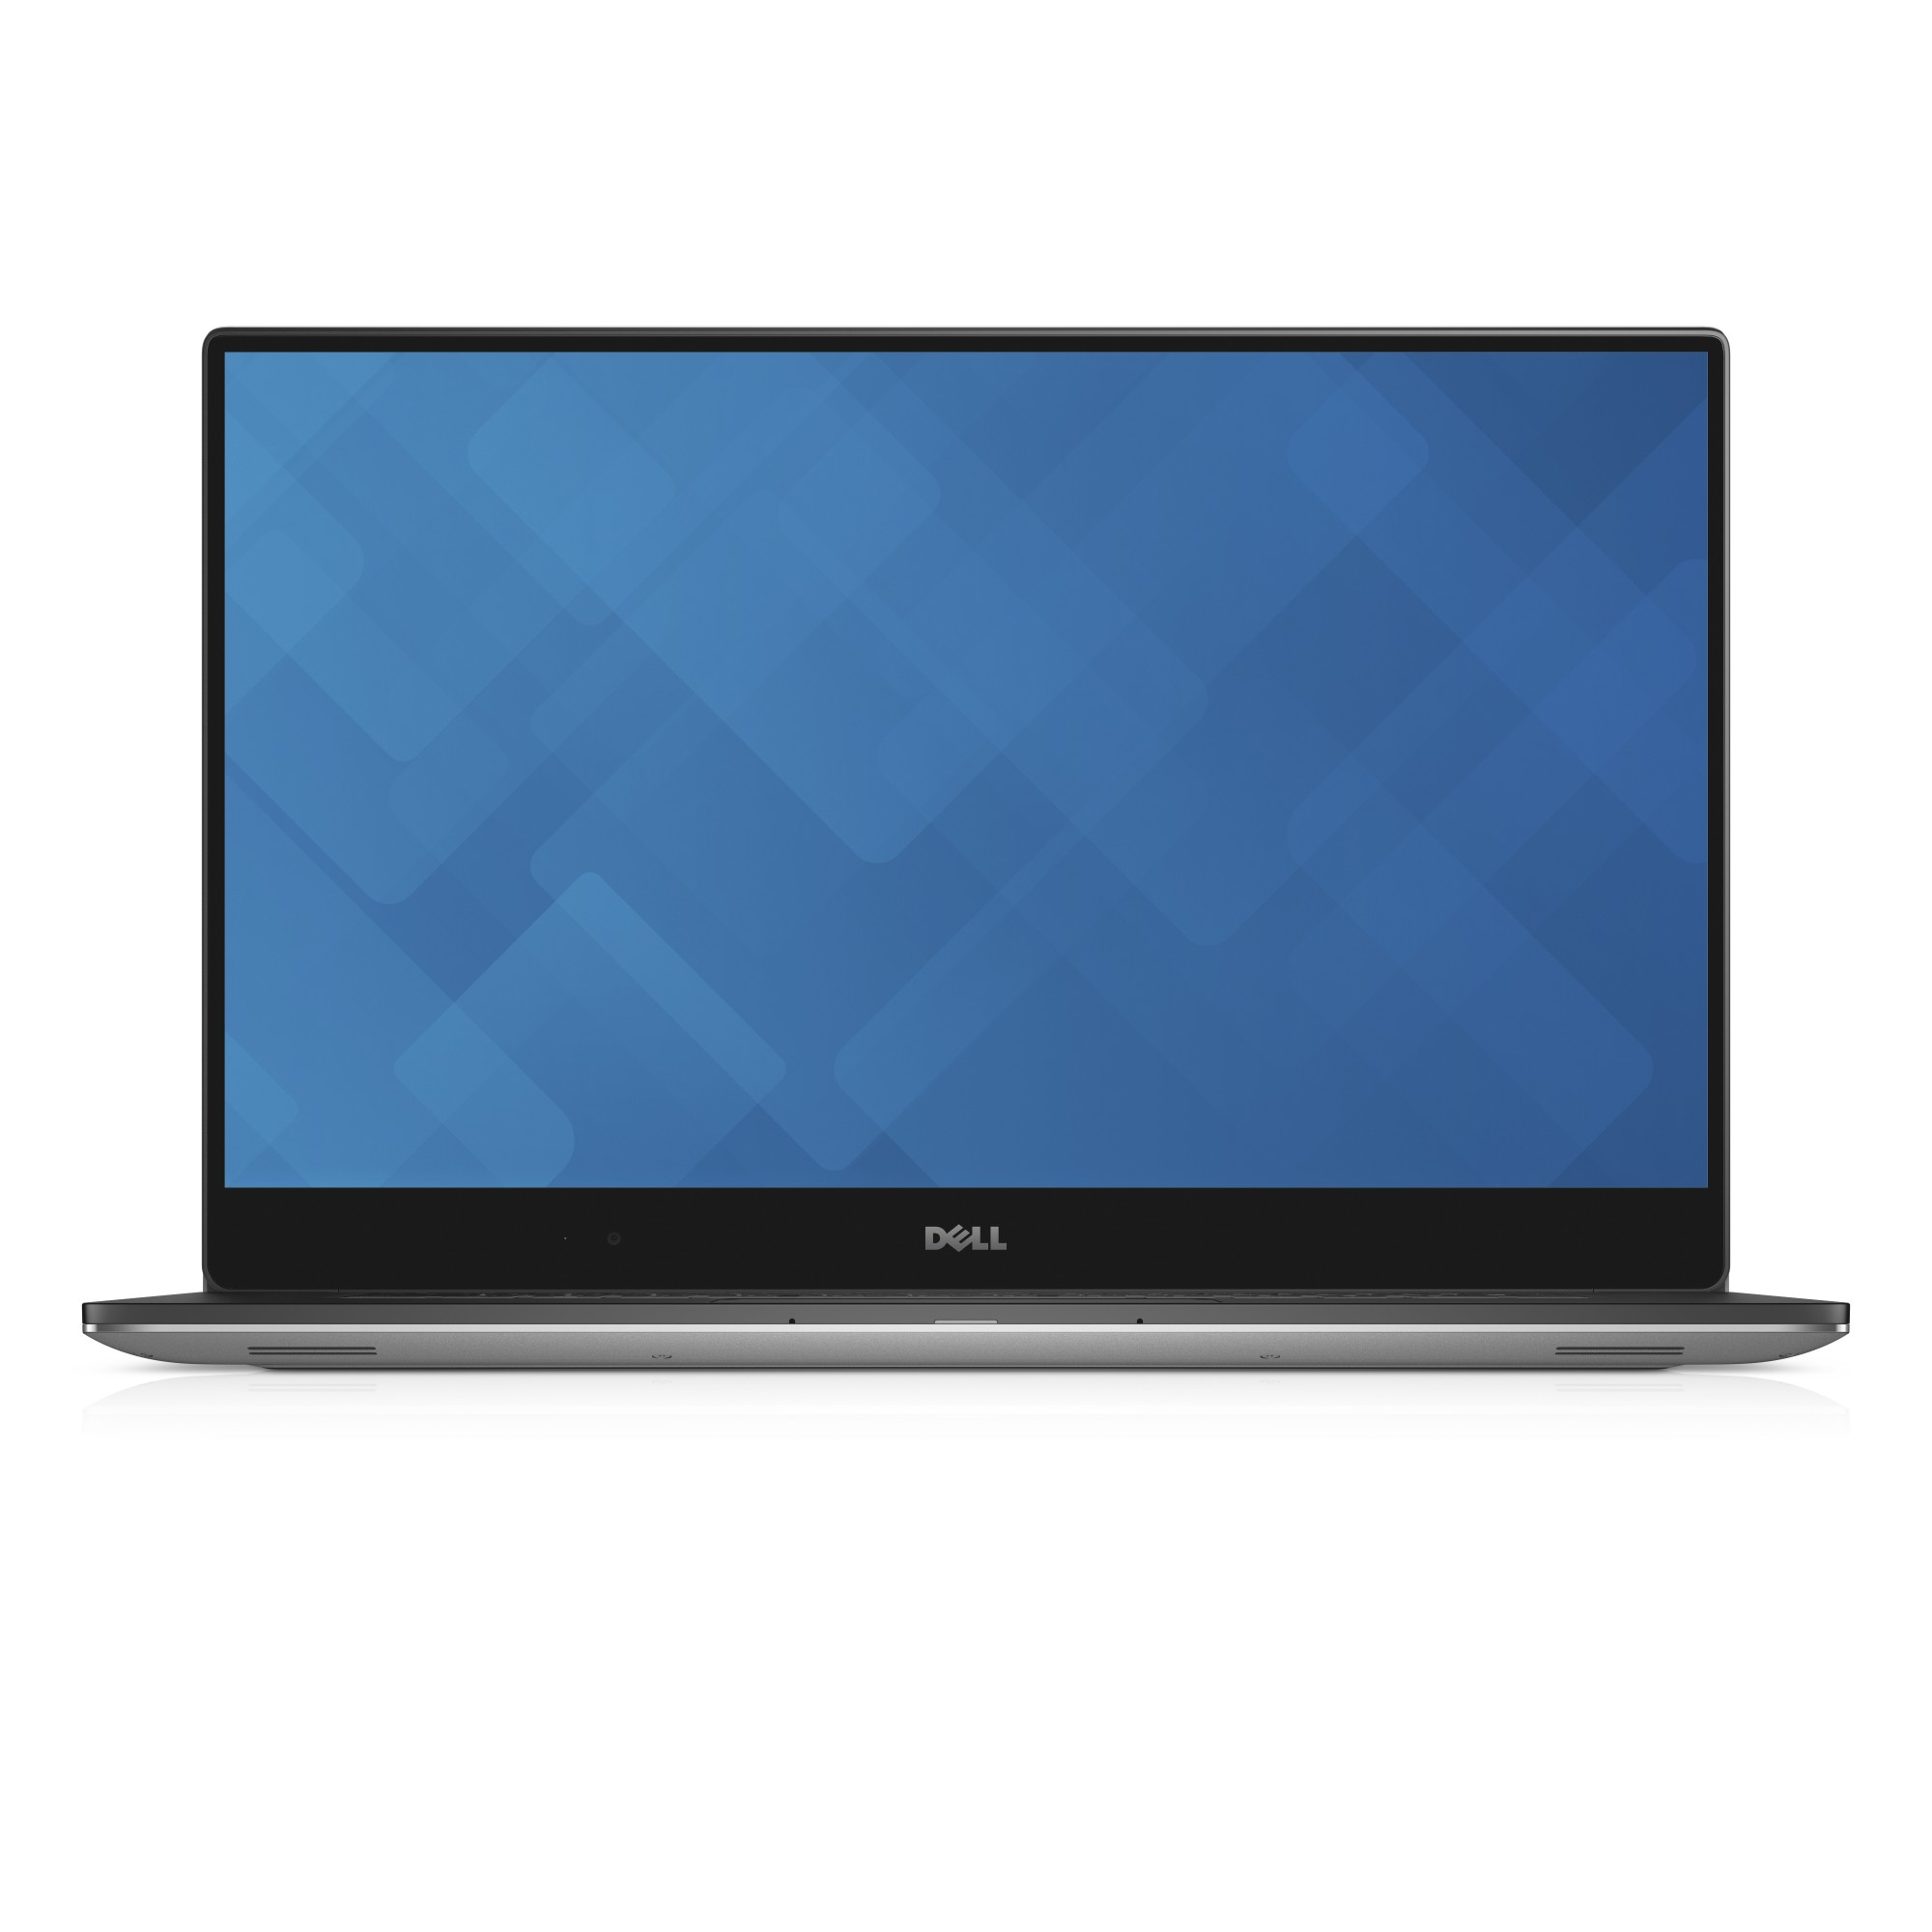 "DELL Precision 15 2.7GHz i7-6820HQ 15.6"" 1920 x 1080pixels Touchscreen Black,Silver Ultrabook"